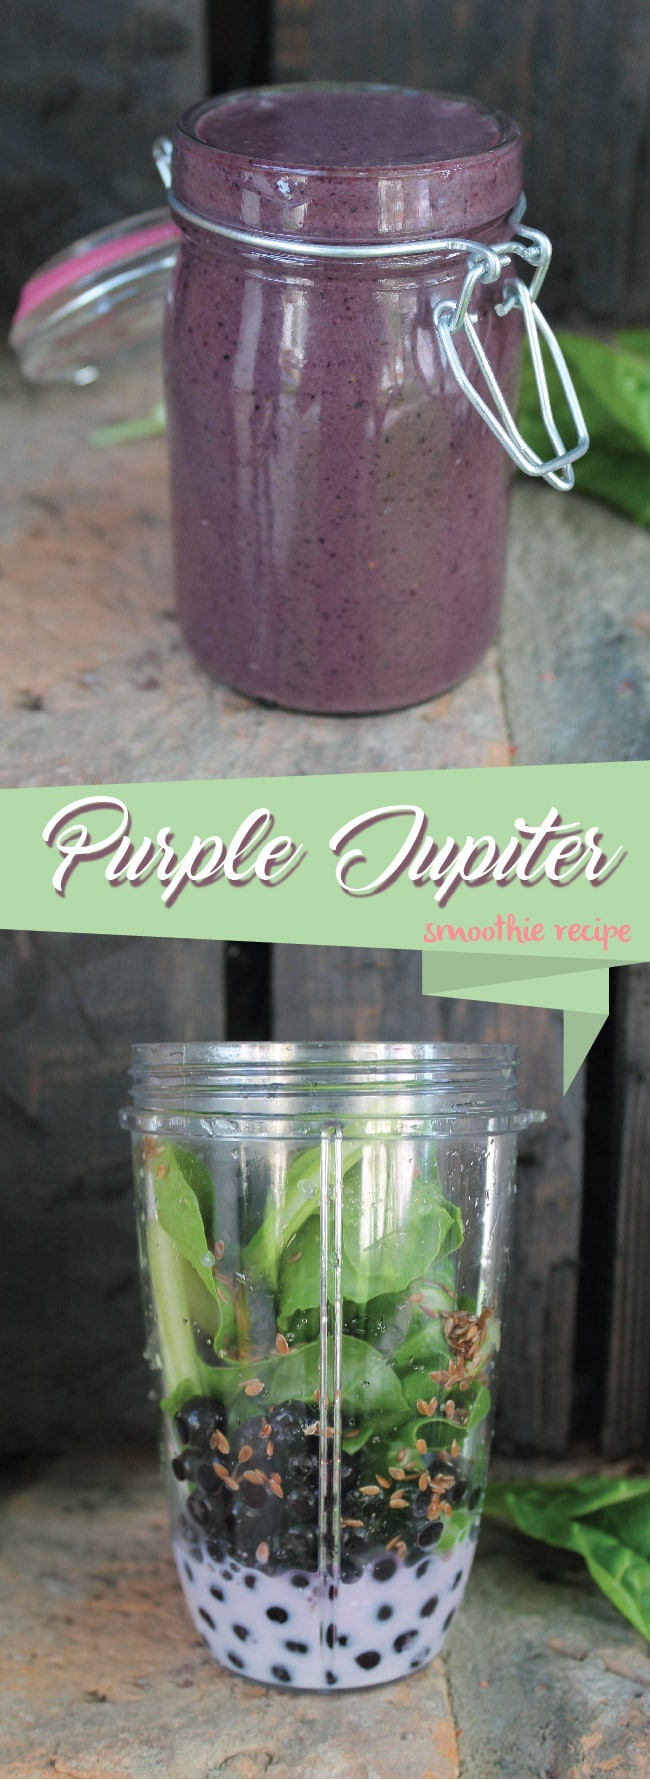 10 Cosmic Health Shakes - The Healthiest Low Carb Smoothie Recipes In The Universe - Purple Jupiter